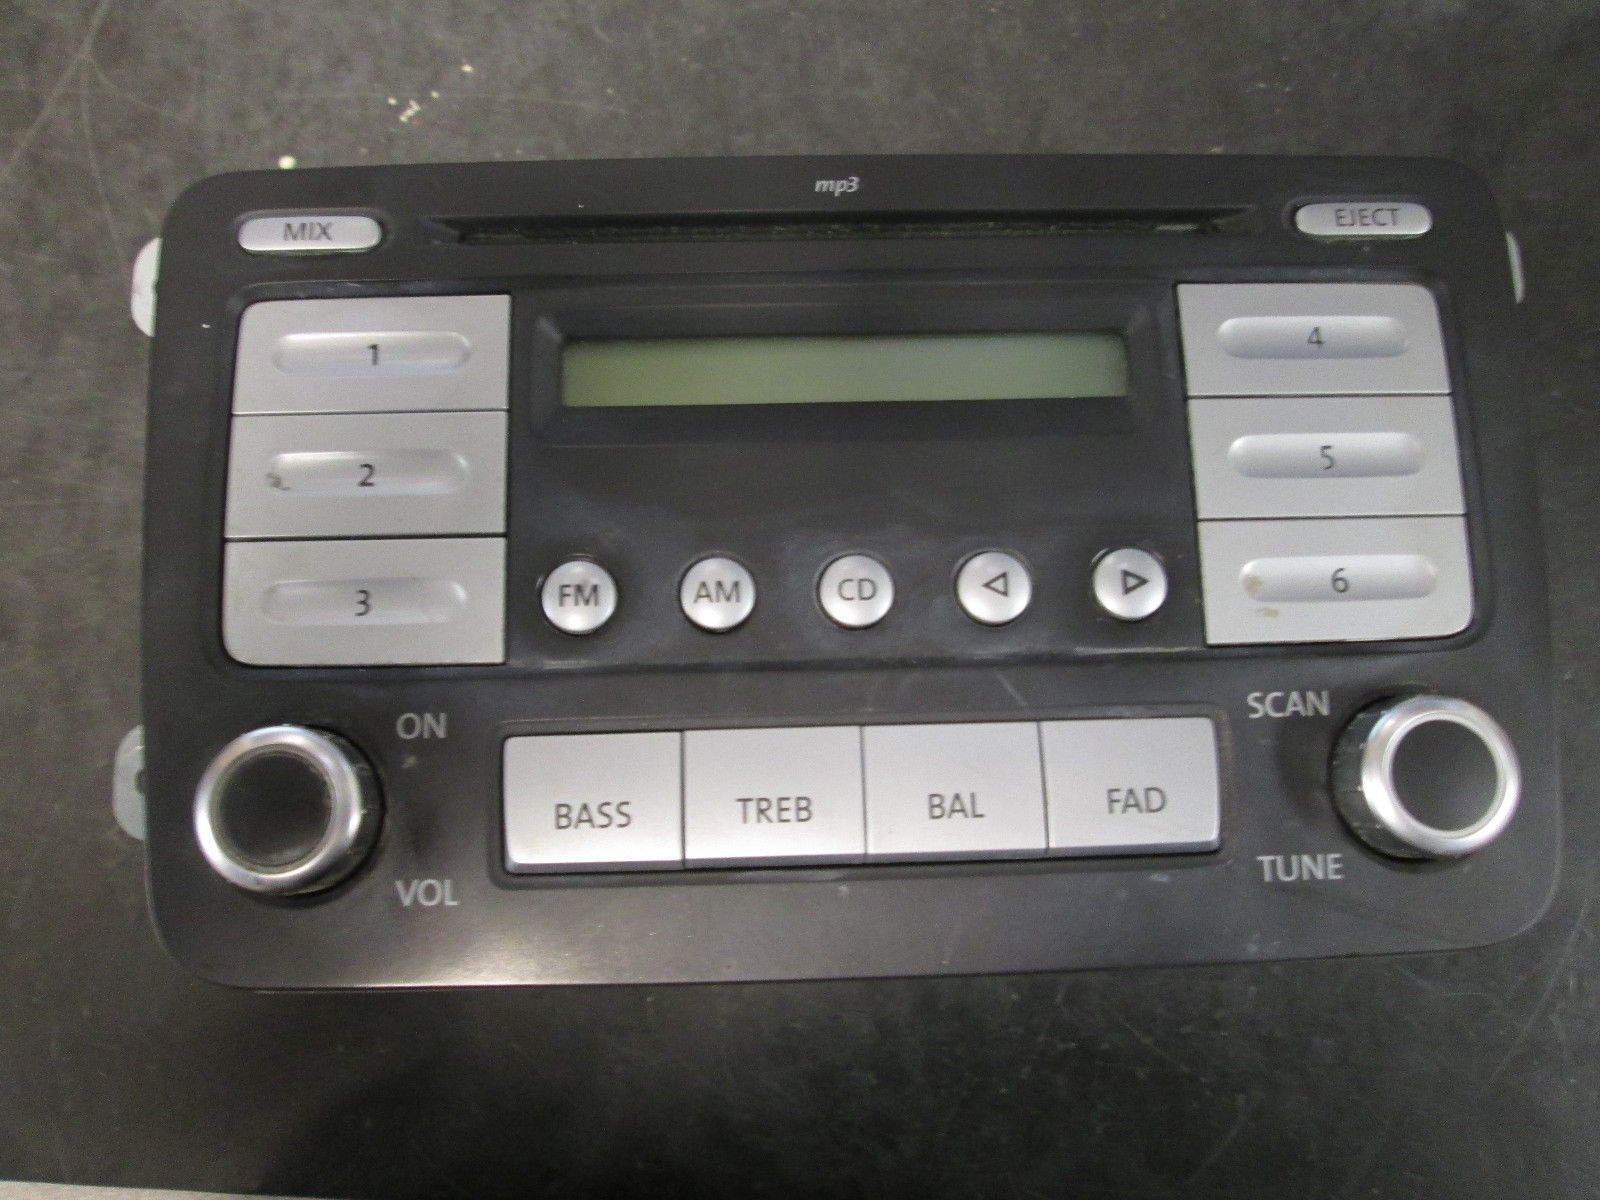 07-09 VW PASSAT JETTA RABBIT CD PLAYER RADIO #28088967 *See item description* - $49.50